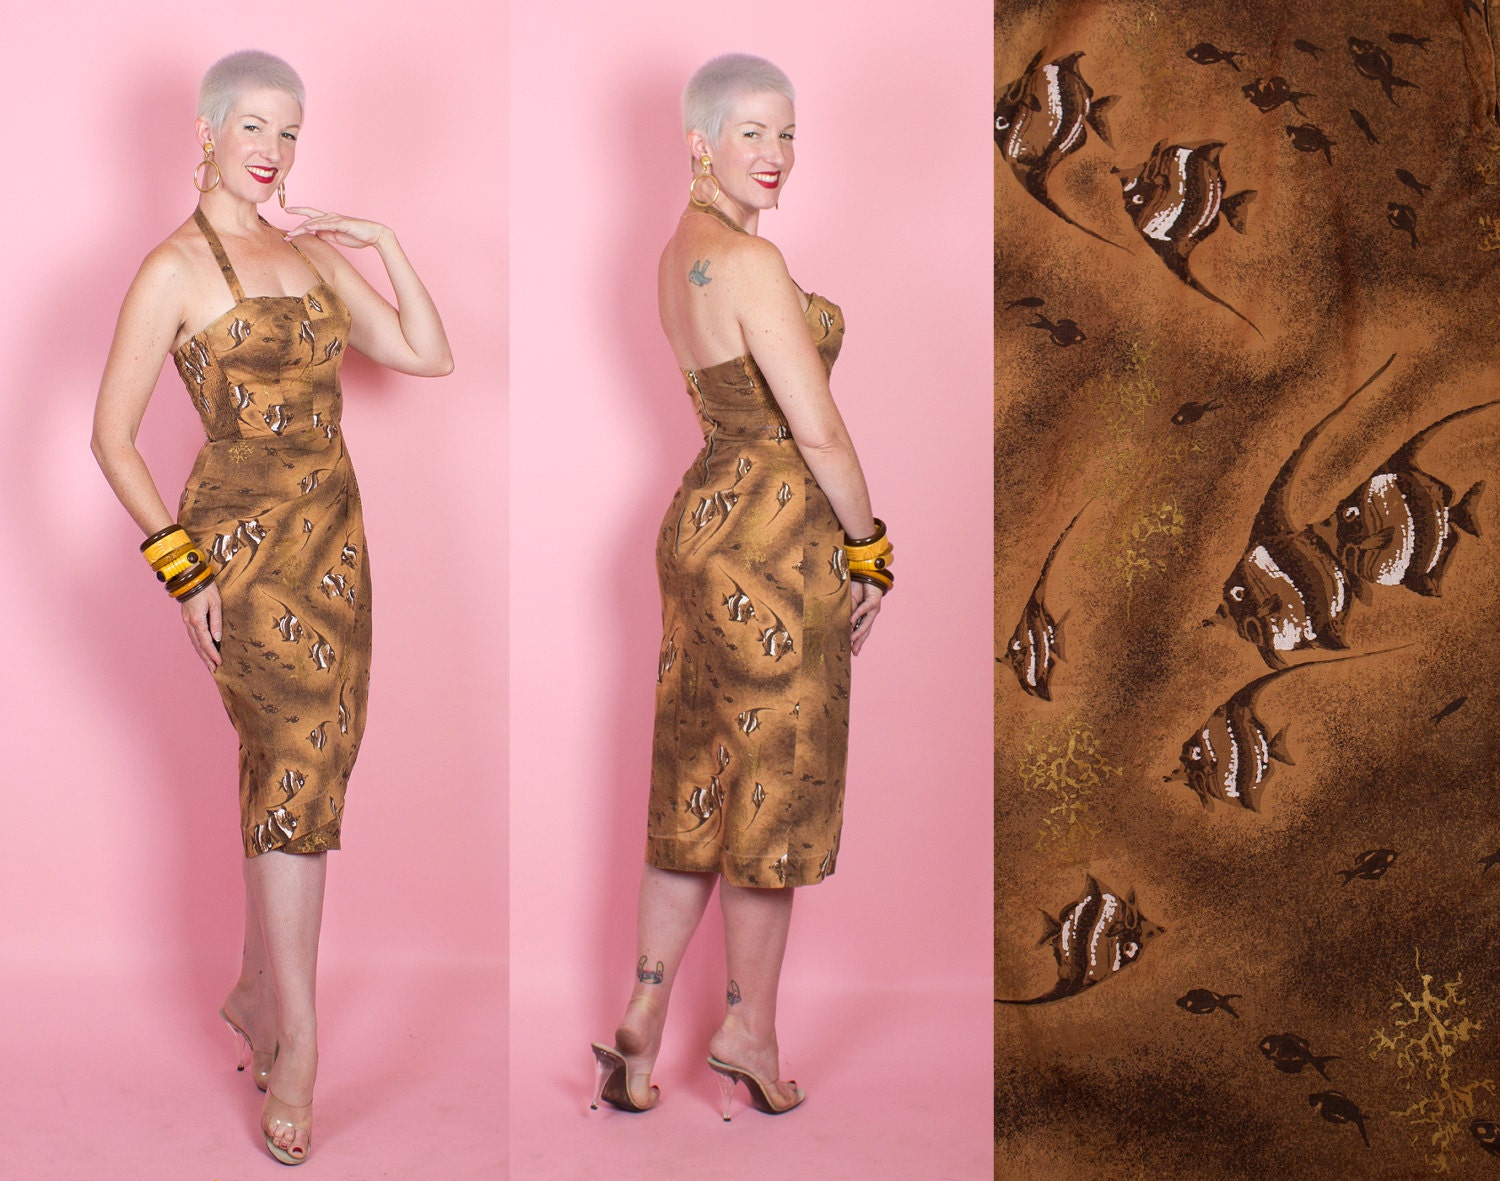 FABULOUS 1950s Hawaiian Cotton Sarong Hourglass Cocktail Dress w Angelfish & Gold Coral by Holo-Holo - Made in Hawaii - Removable Straps - M